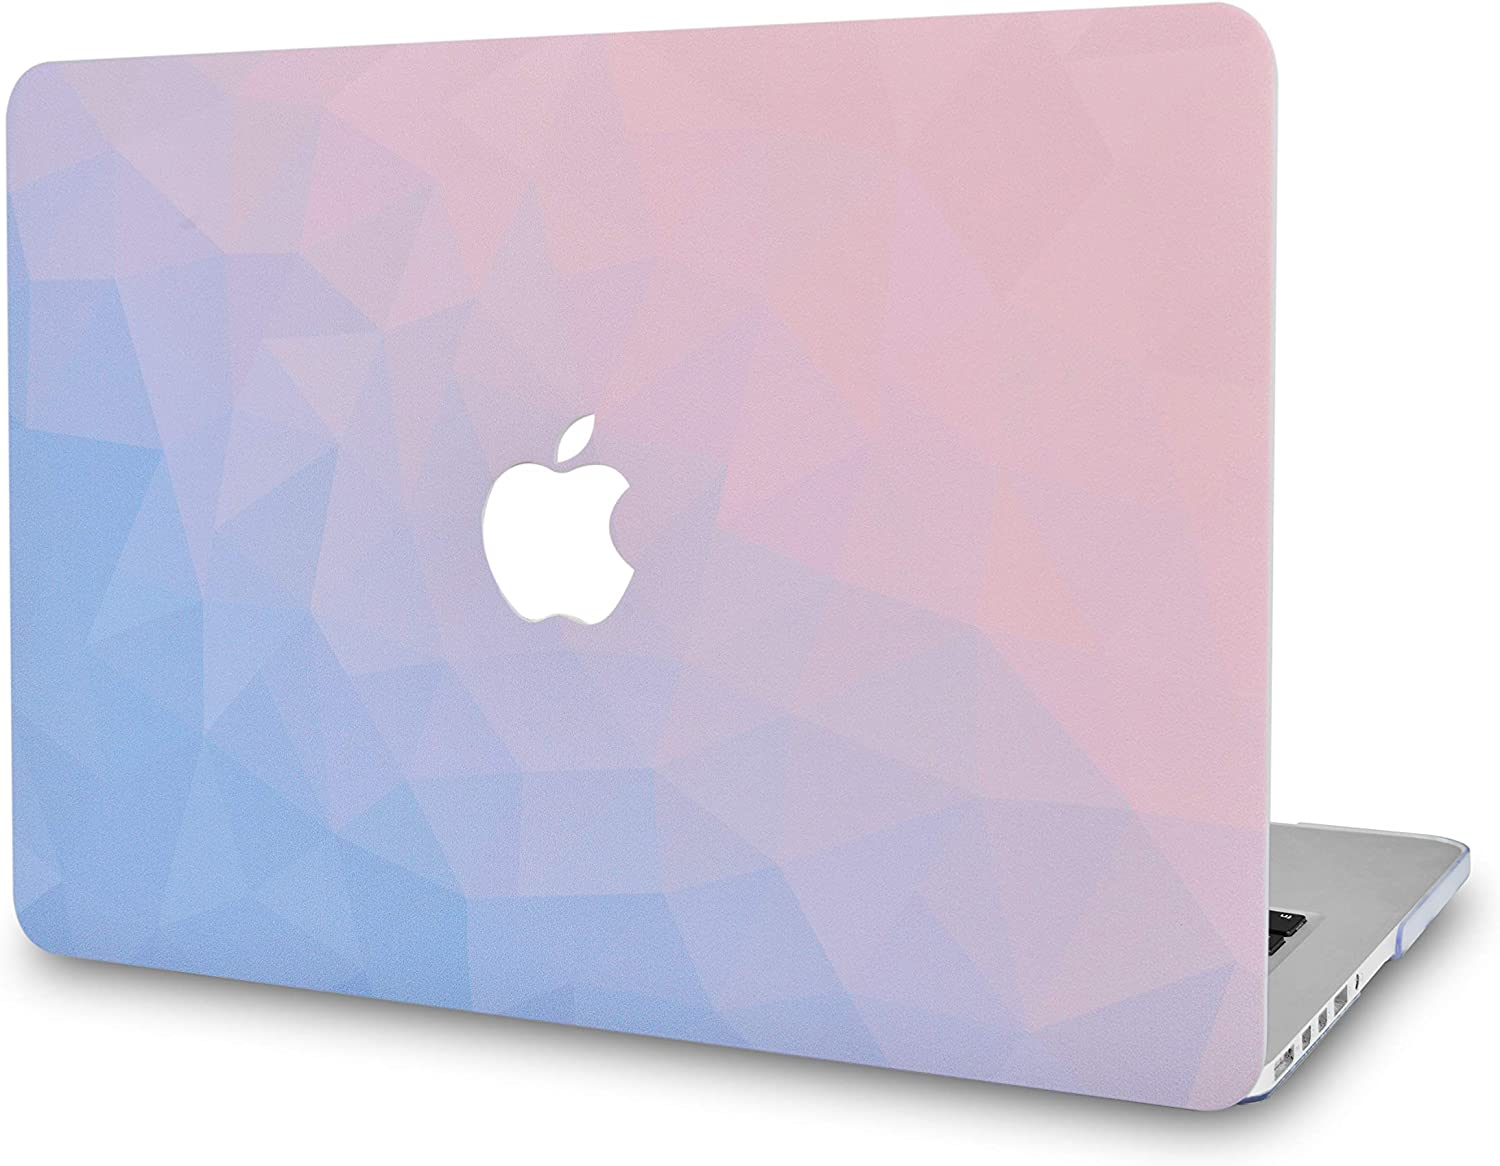 LuvCase Laptop Case for MacBook Air 13 Inch (2020/2019/2018) A2179/A1932 Retina Display (Touch ID) Rubberized Plastic Hard Shell Cover (Ombre Pink Blue)